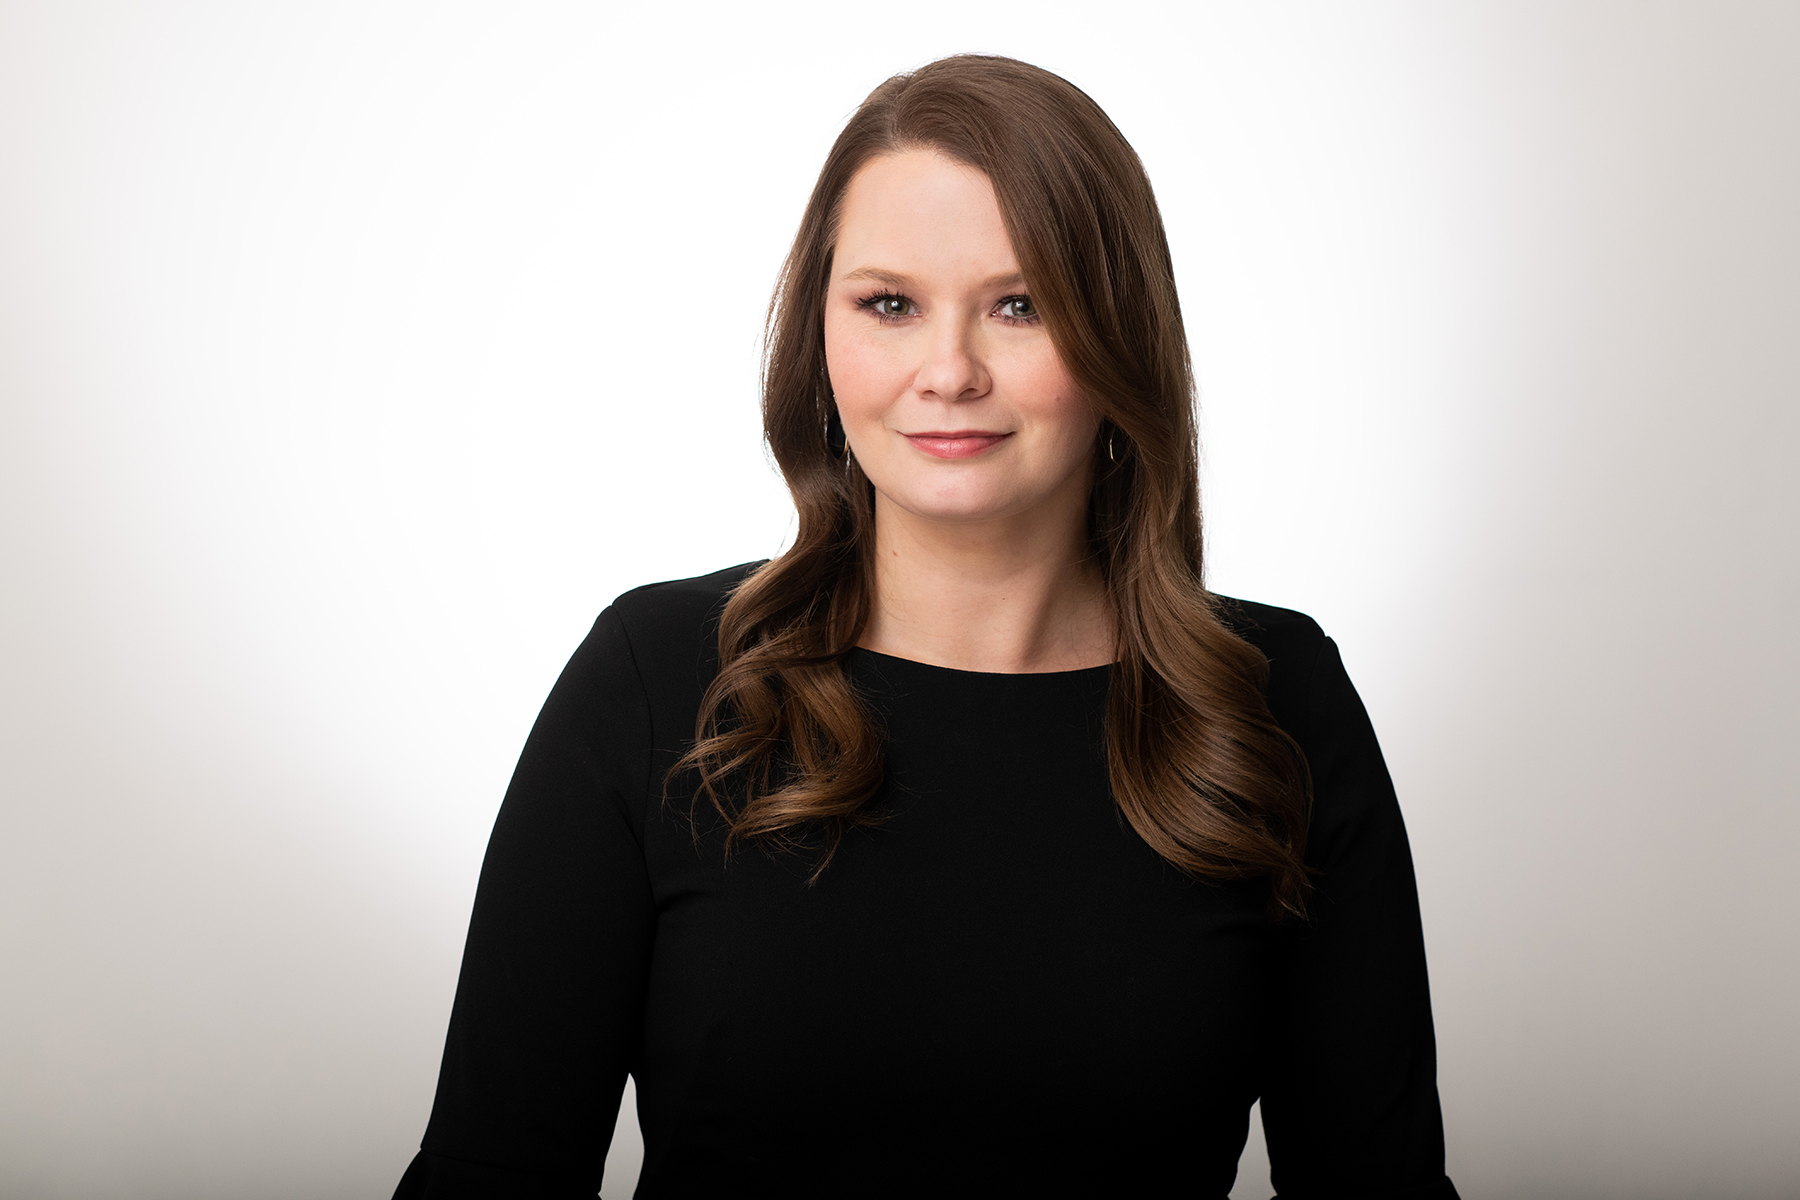 Nicole M. Masnica. Photo courtesy of Gimbel, Reilly, Guerin & Brown LLP.